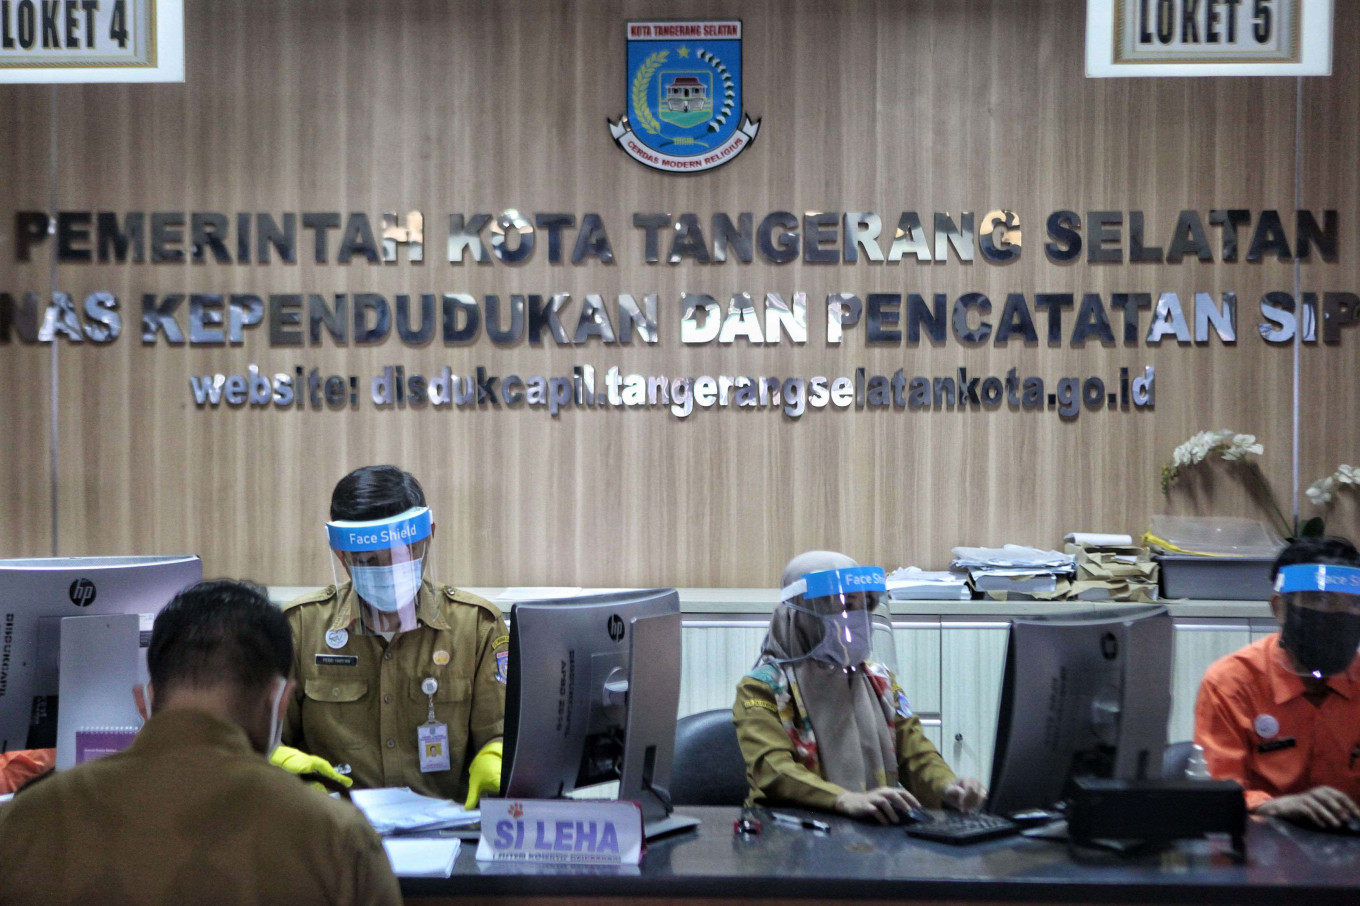 South Tangerang achieves 88 percent compliance rate with COVID-19 protocols